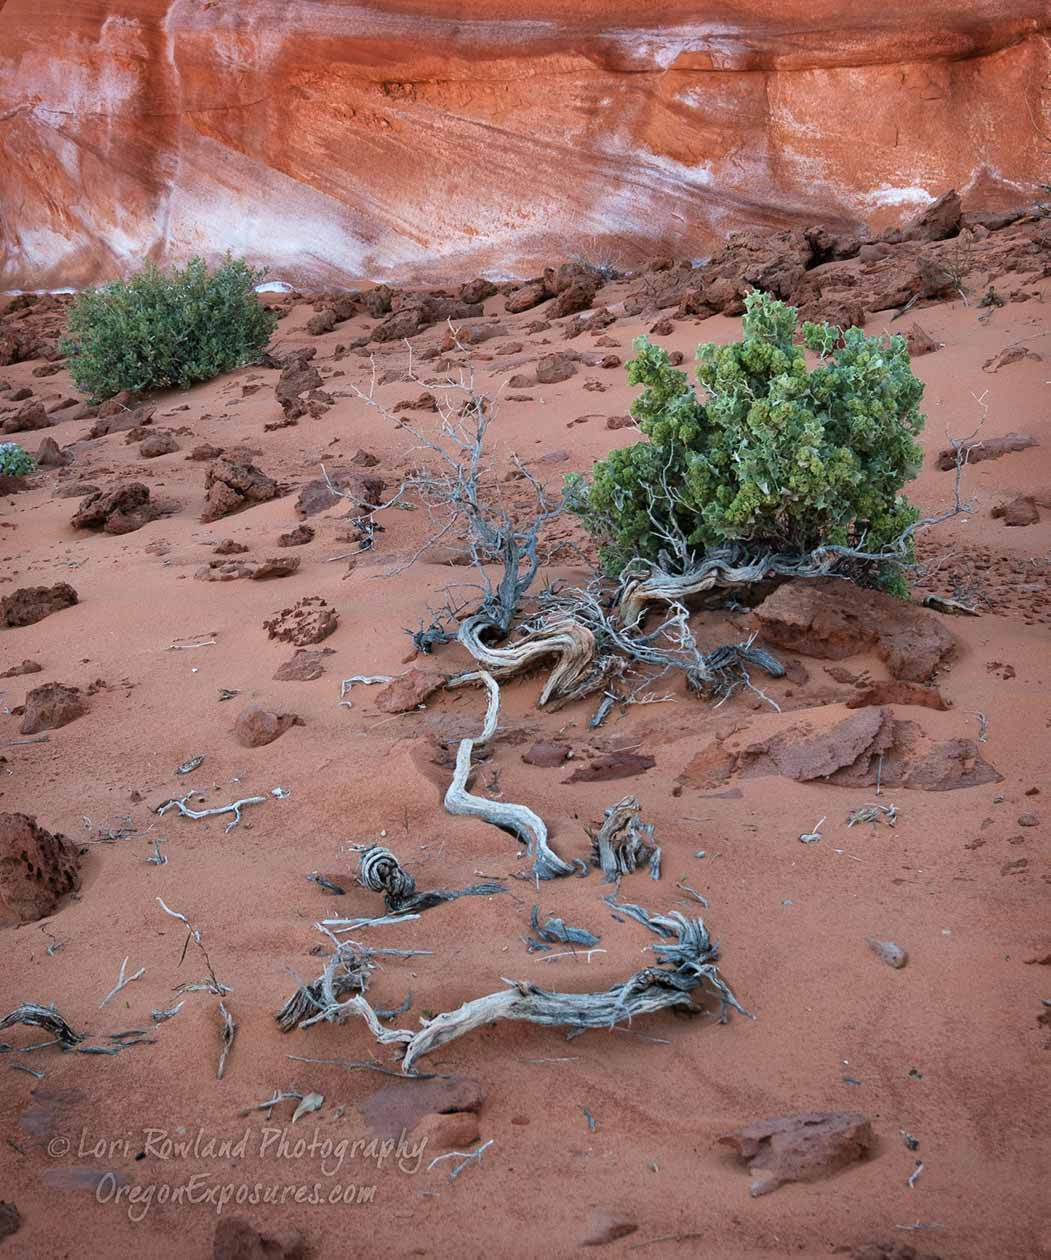 Conditions can be harsh in the desert but these shrubs seem to manage.